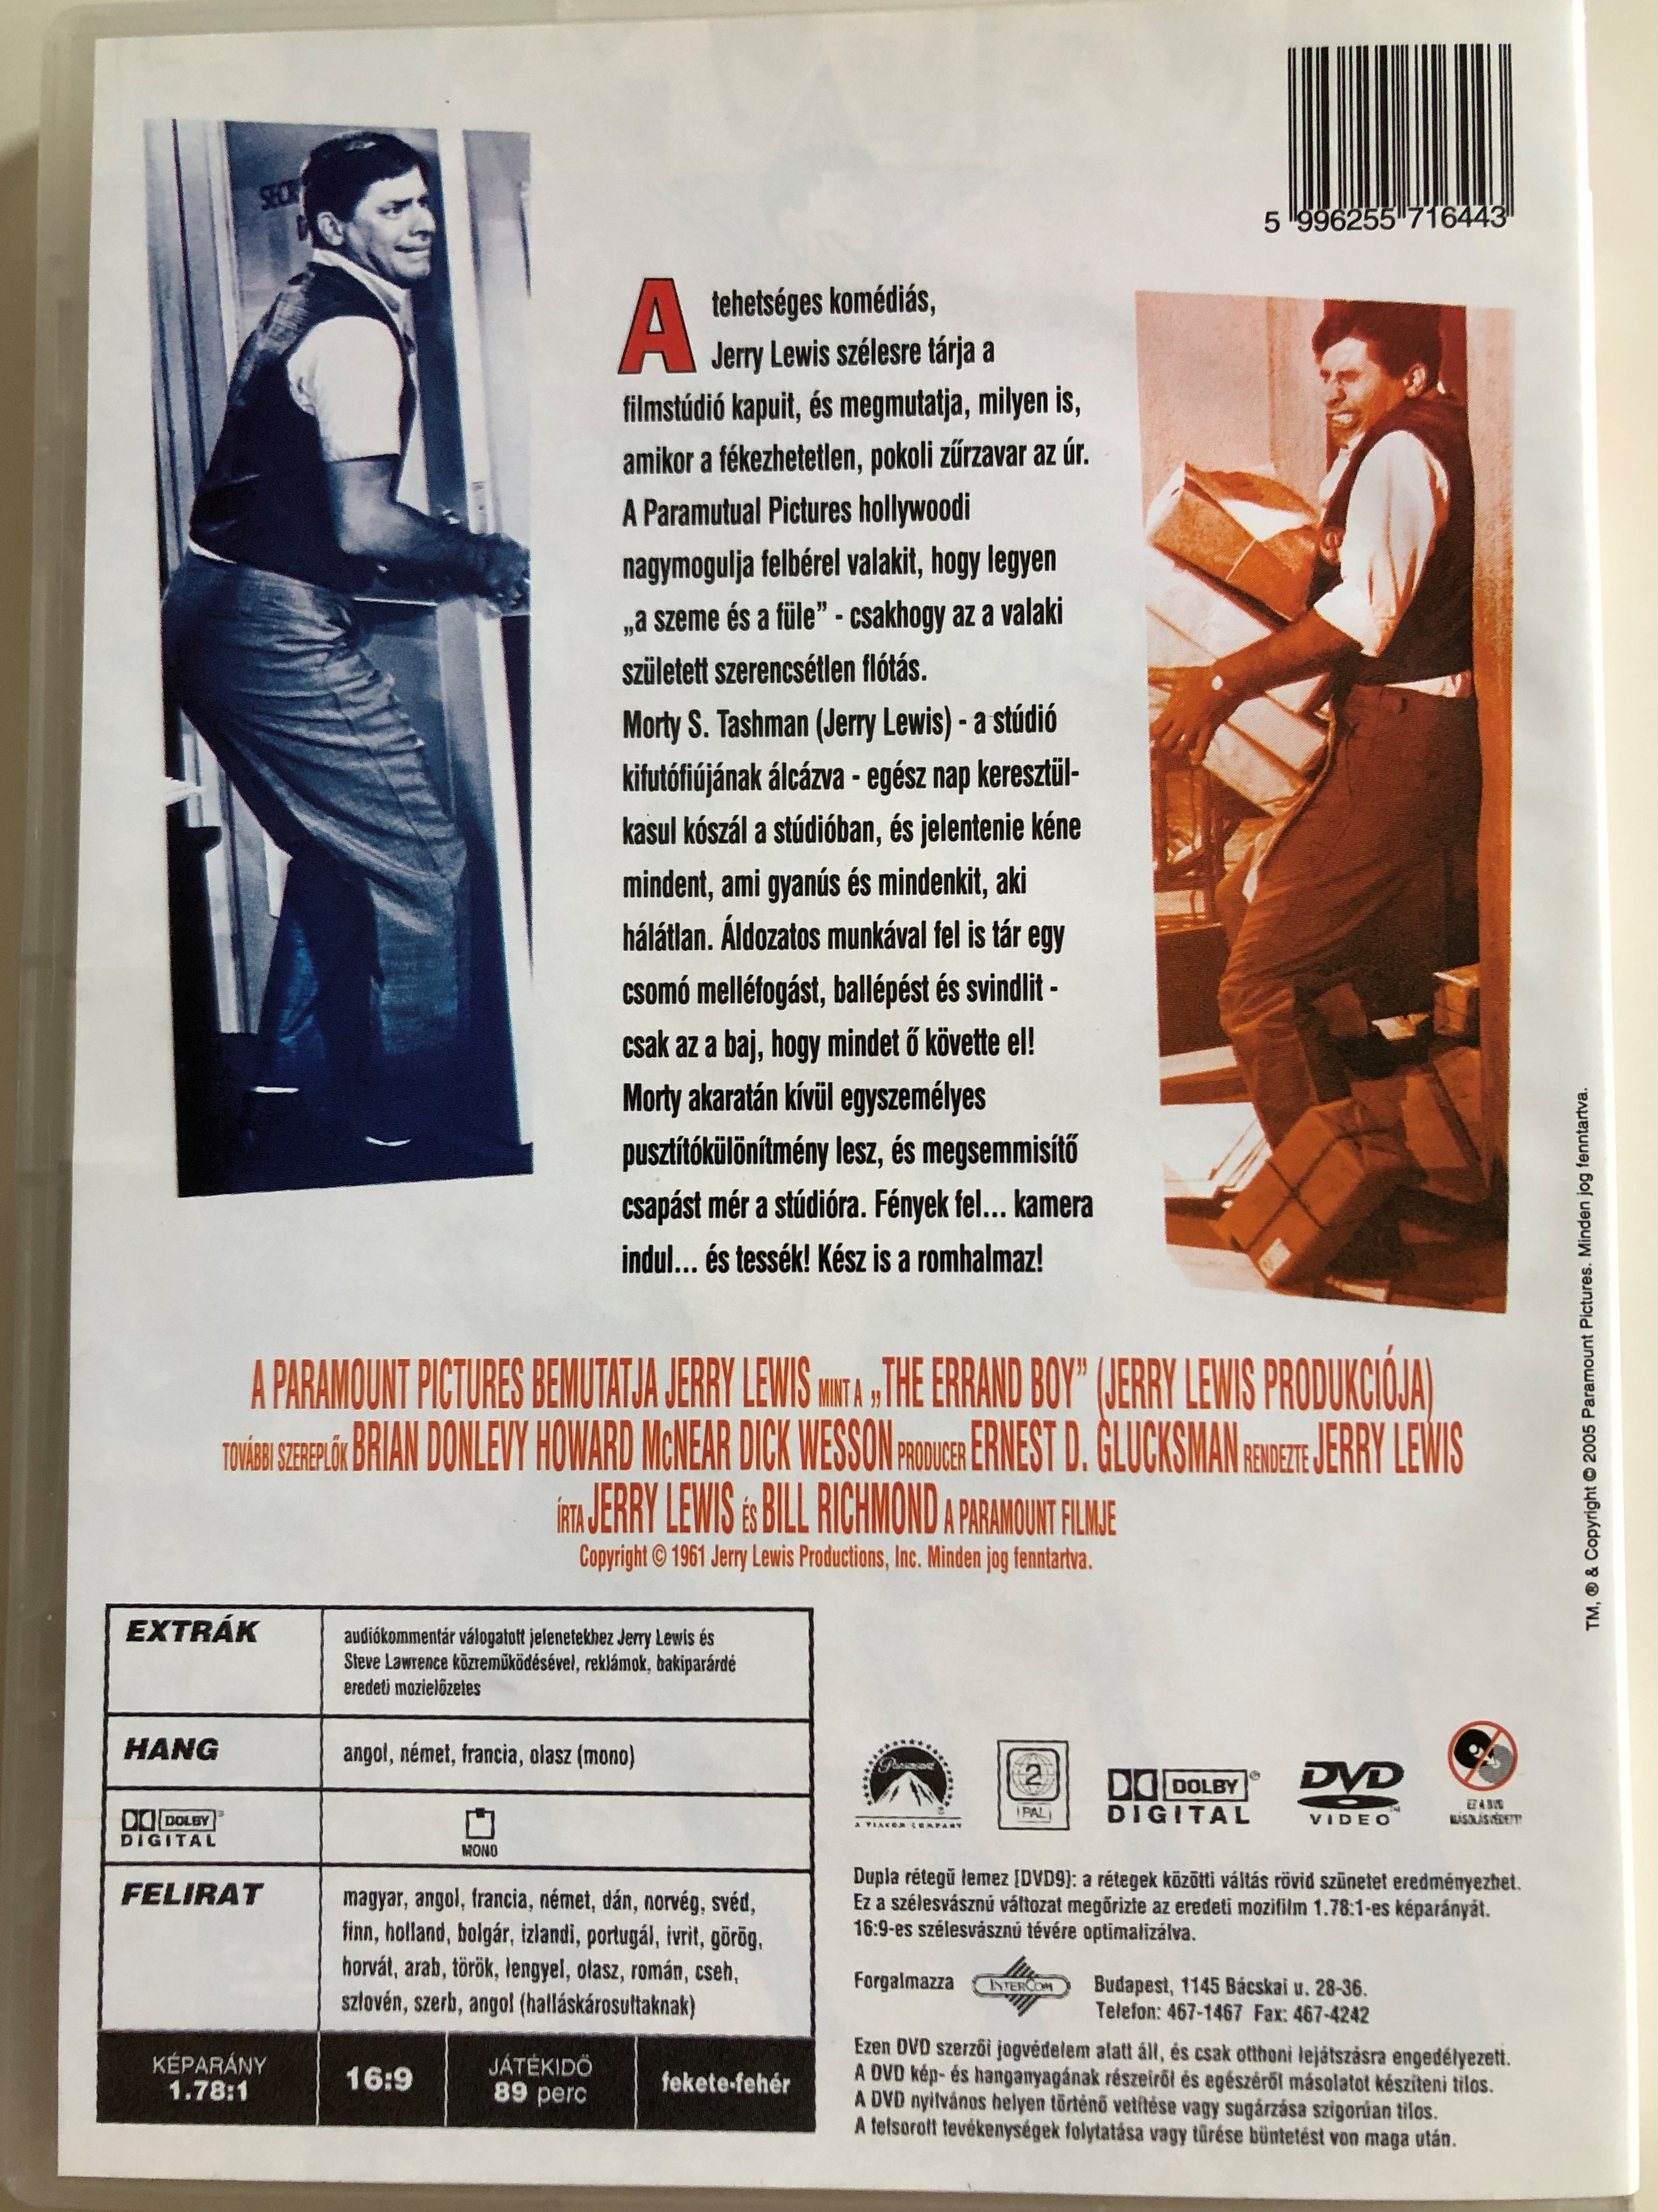 the-errand-boy-dvd-1961-szerencs-tlen-fl-t-s-directed-by-jerry-lewis-starring-jerry-lewis-brian-donlevy-howard-mcnear-dick-wesson-2-.jpg